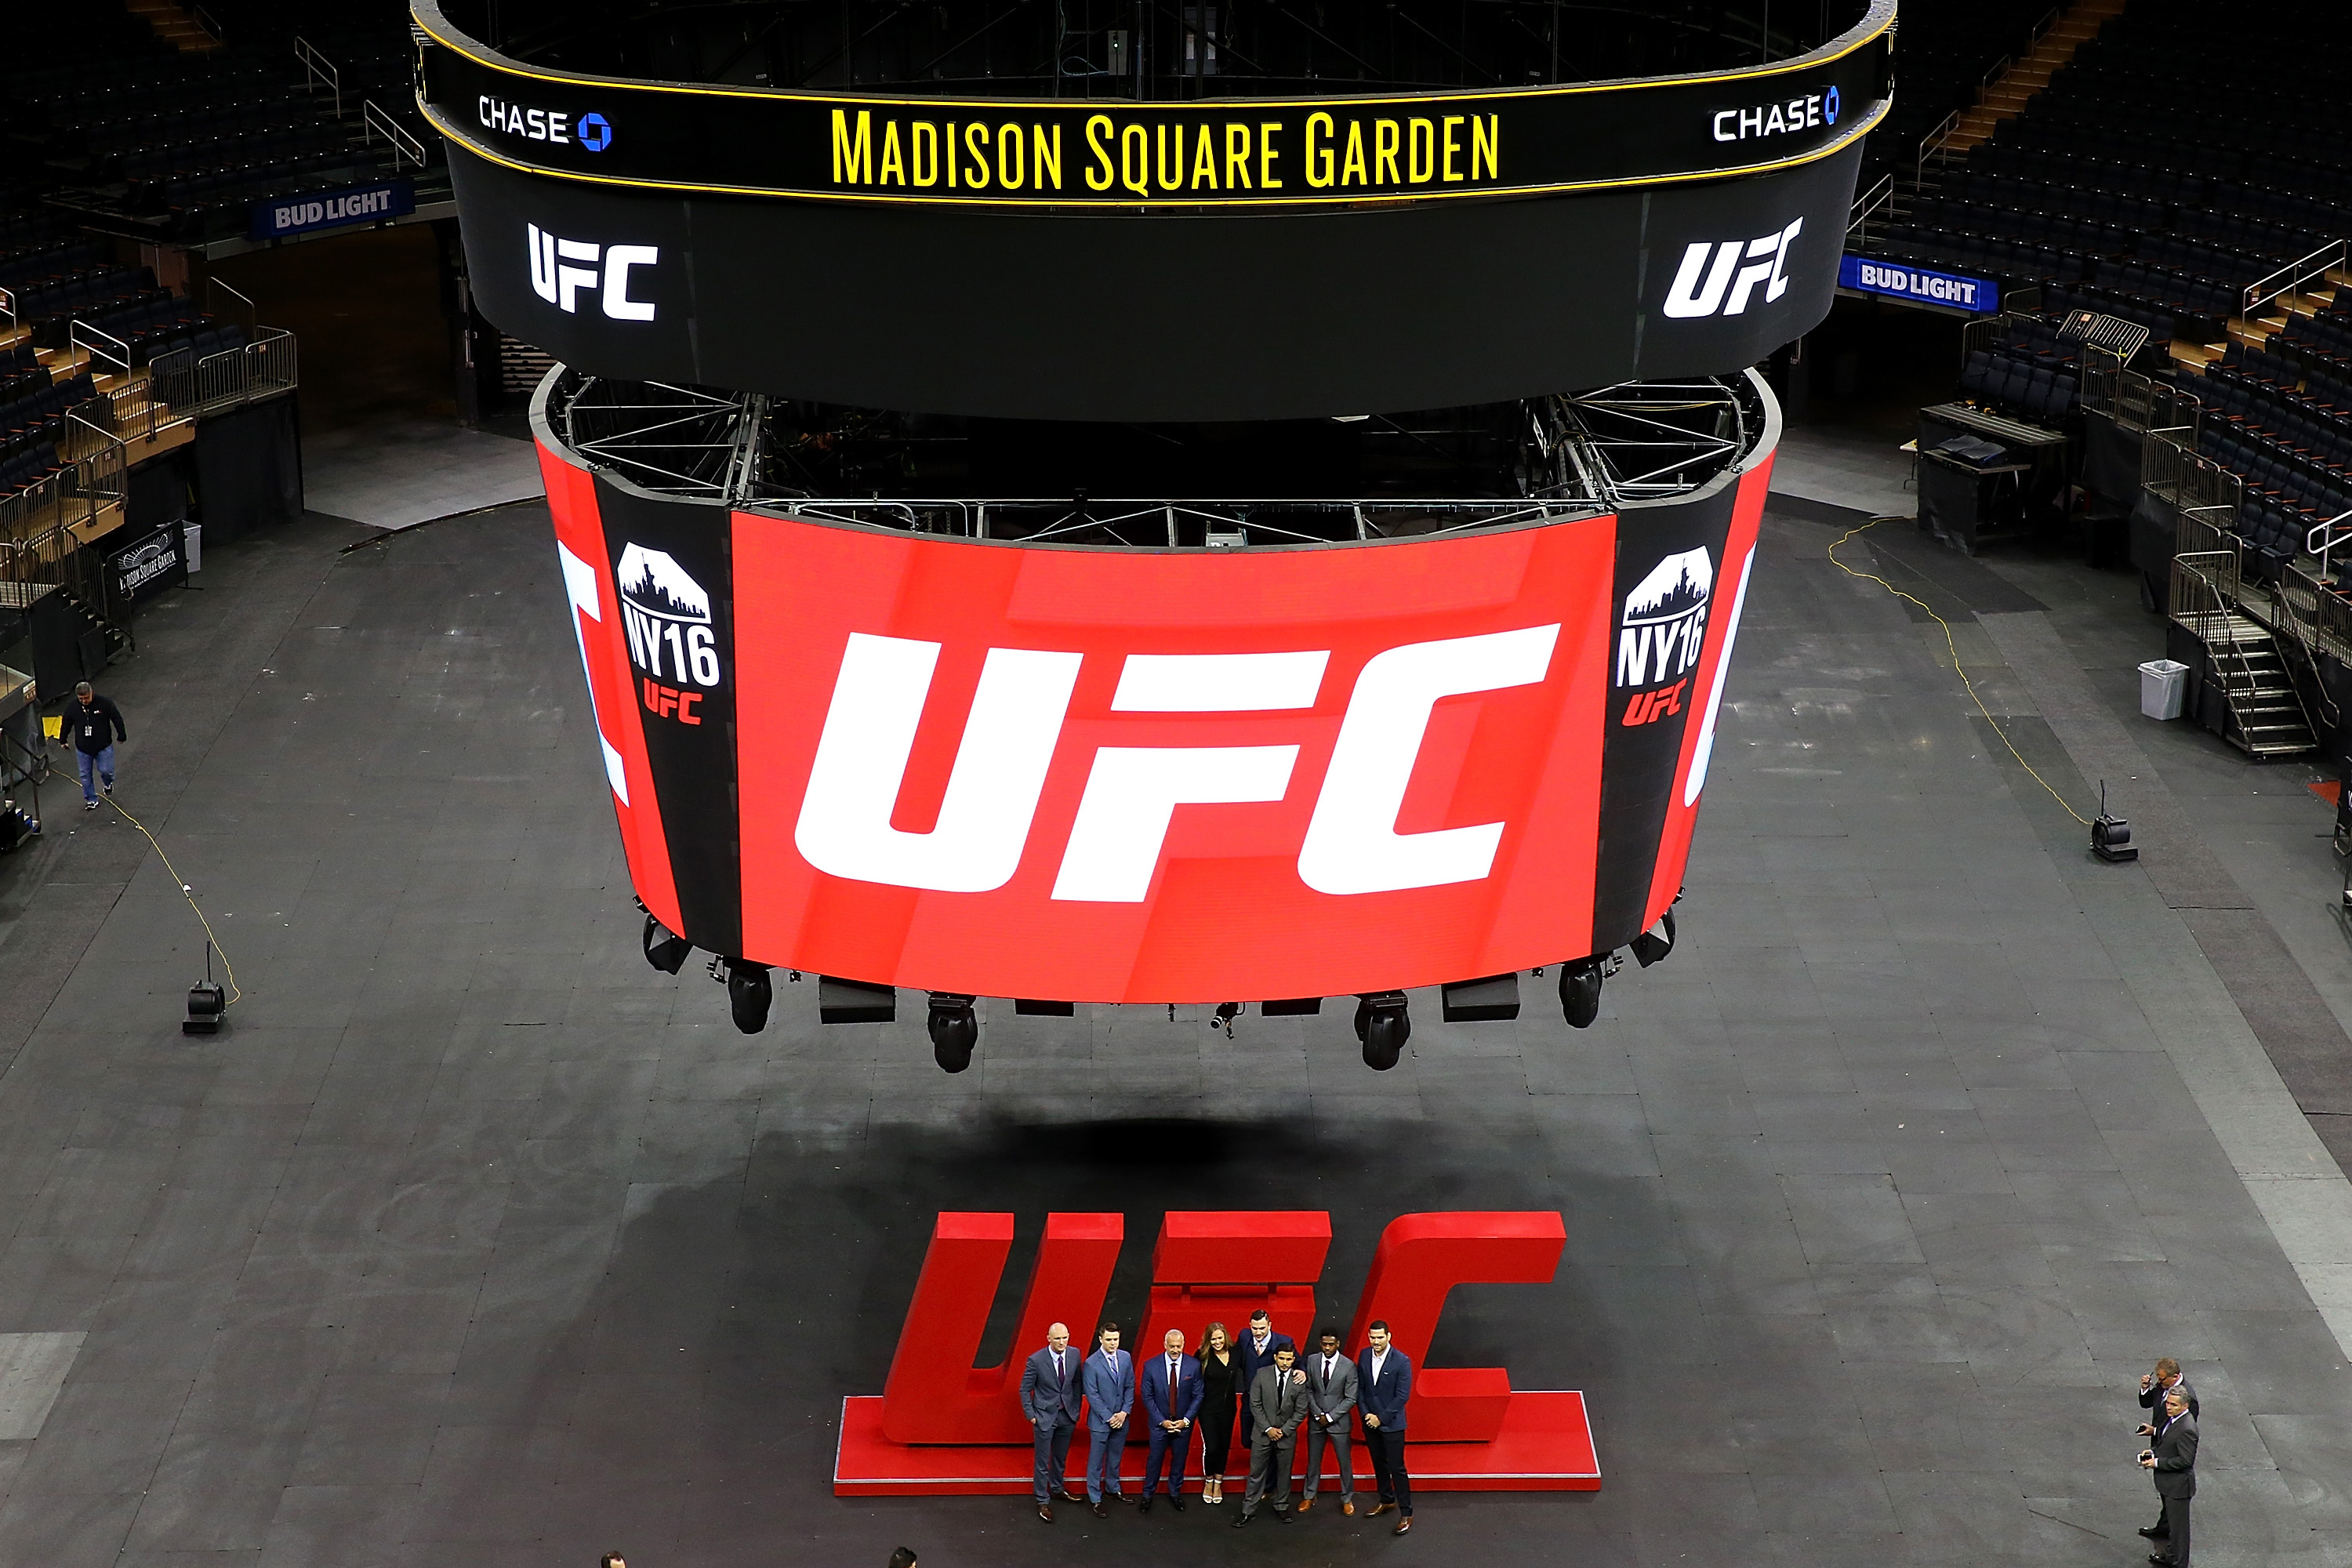 Thereu0027s No Place Like New Yorku0027s Madison Square Garden   Ultimate Fighting  Championship Mobile